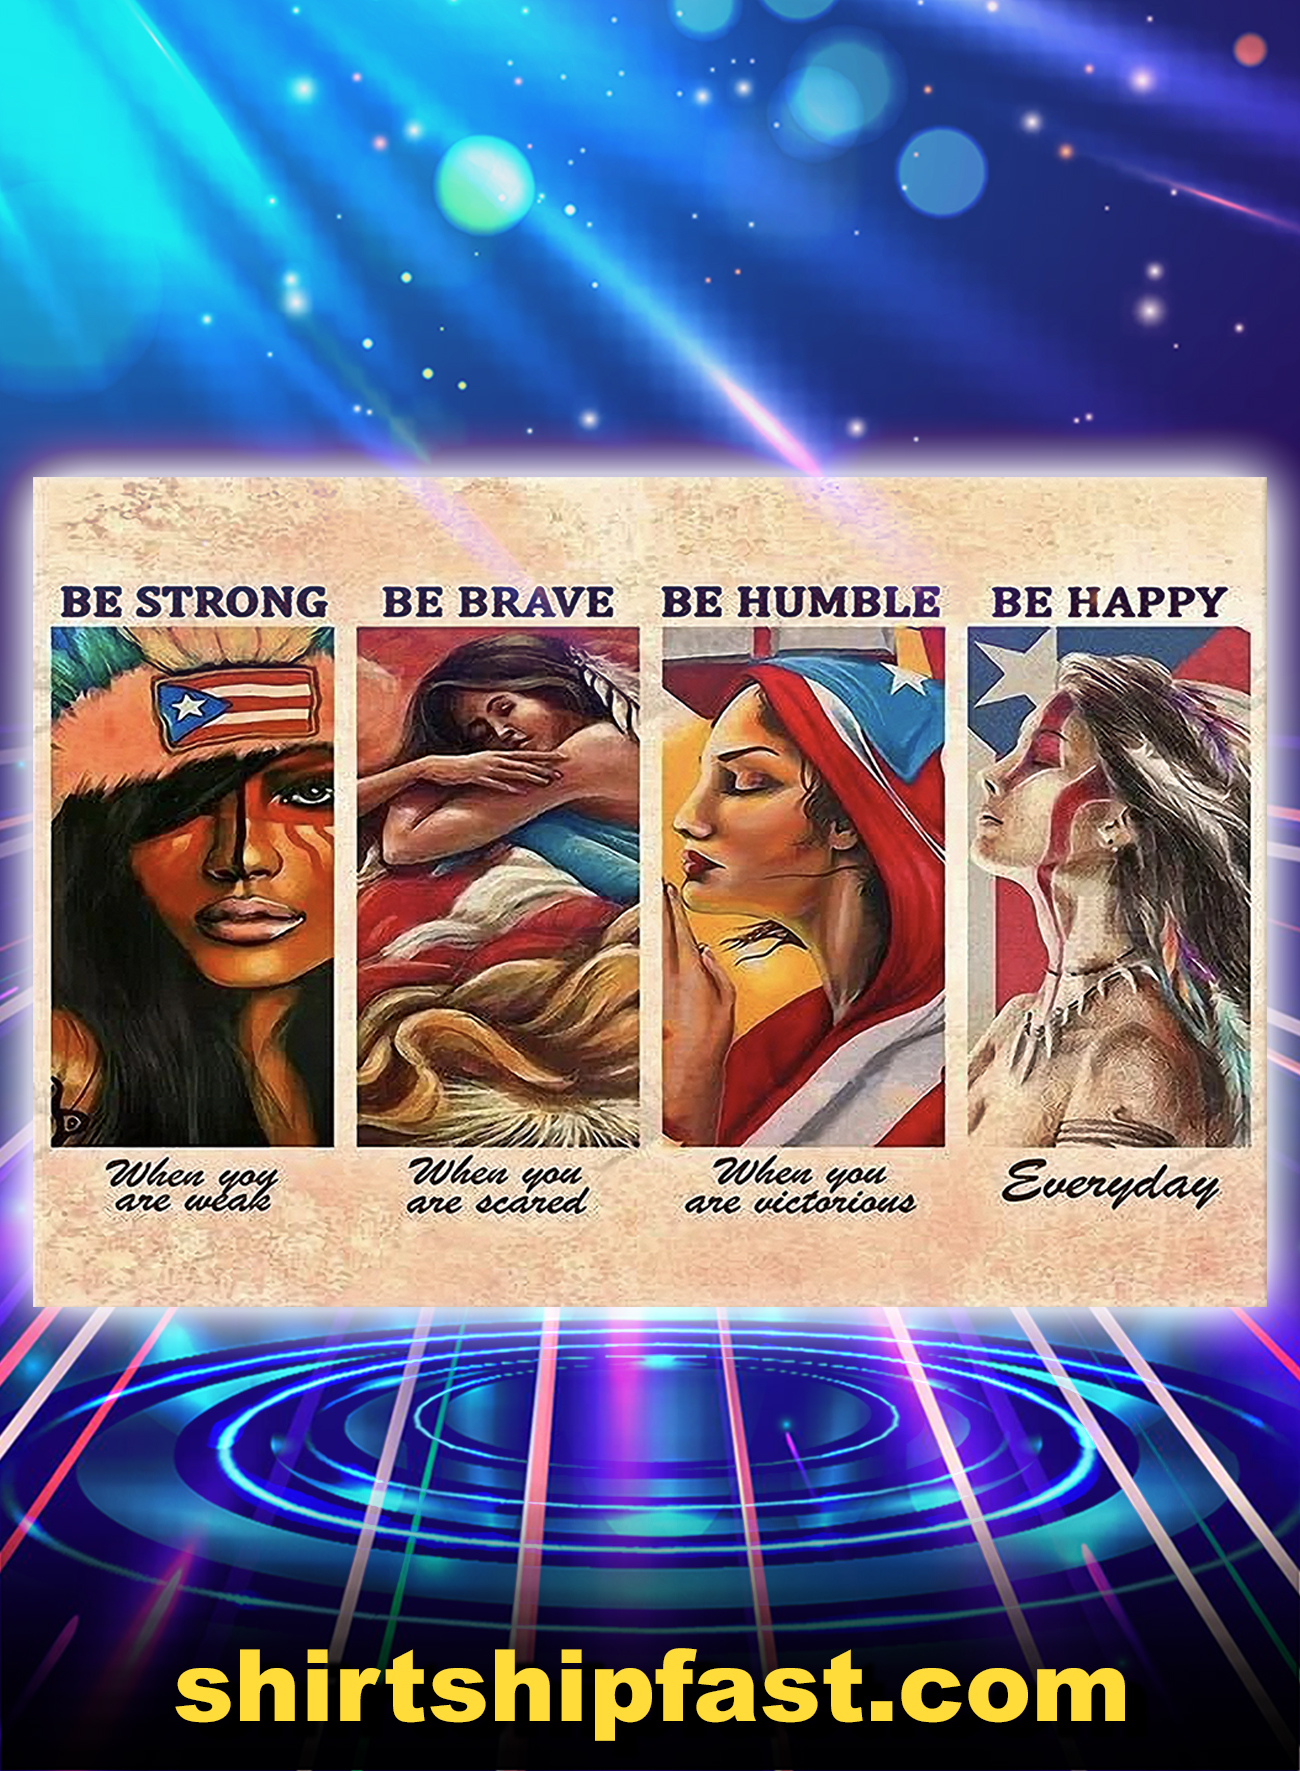 Puerto rico girls be strong be brave be humble be happy poster and canvas prints